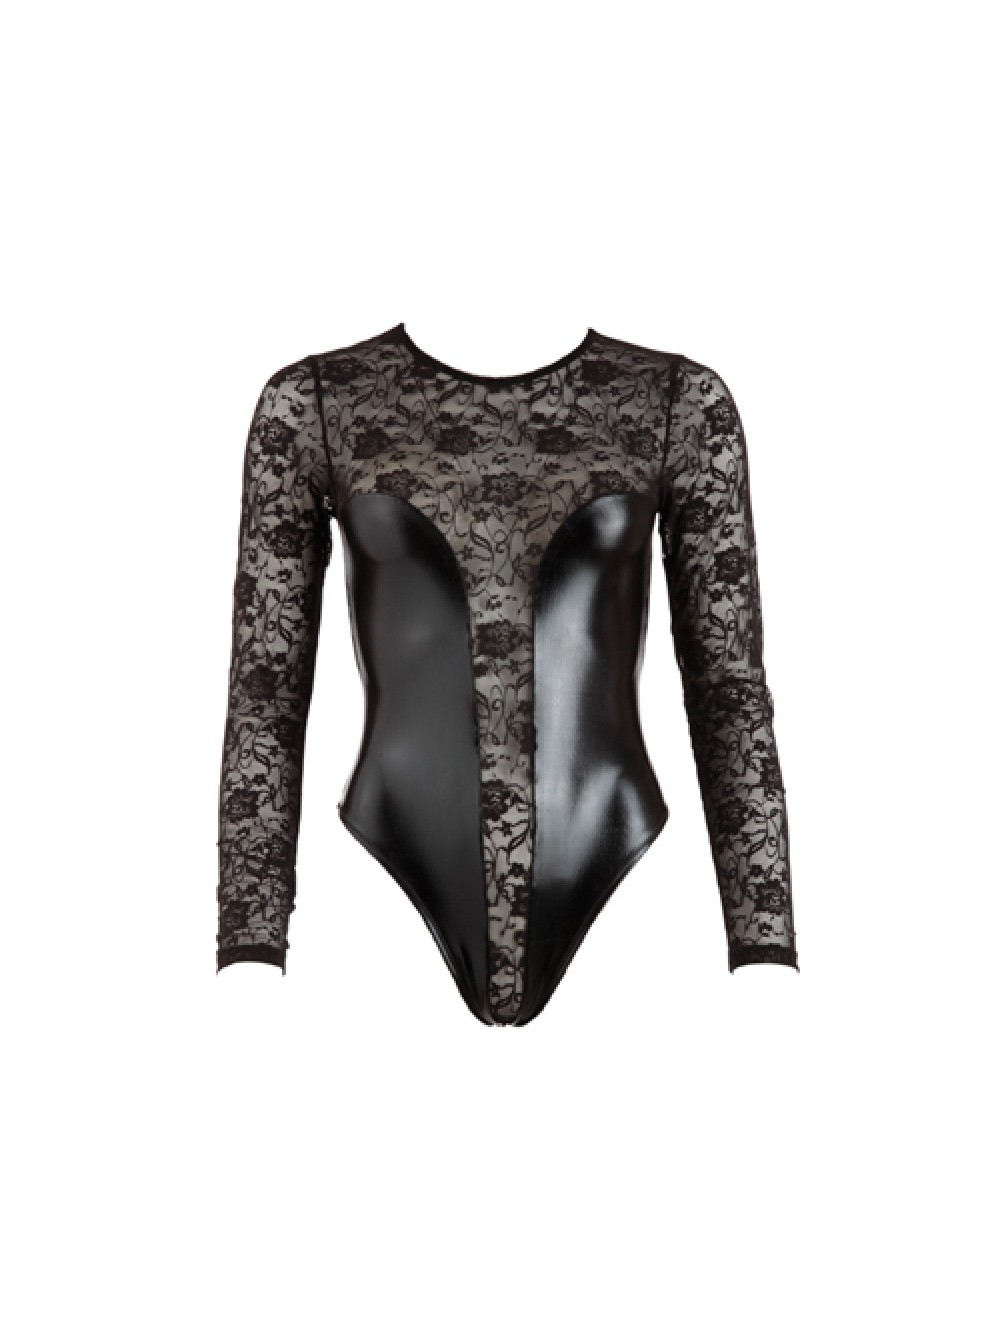 Lace Wetlook Body 4024144263080